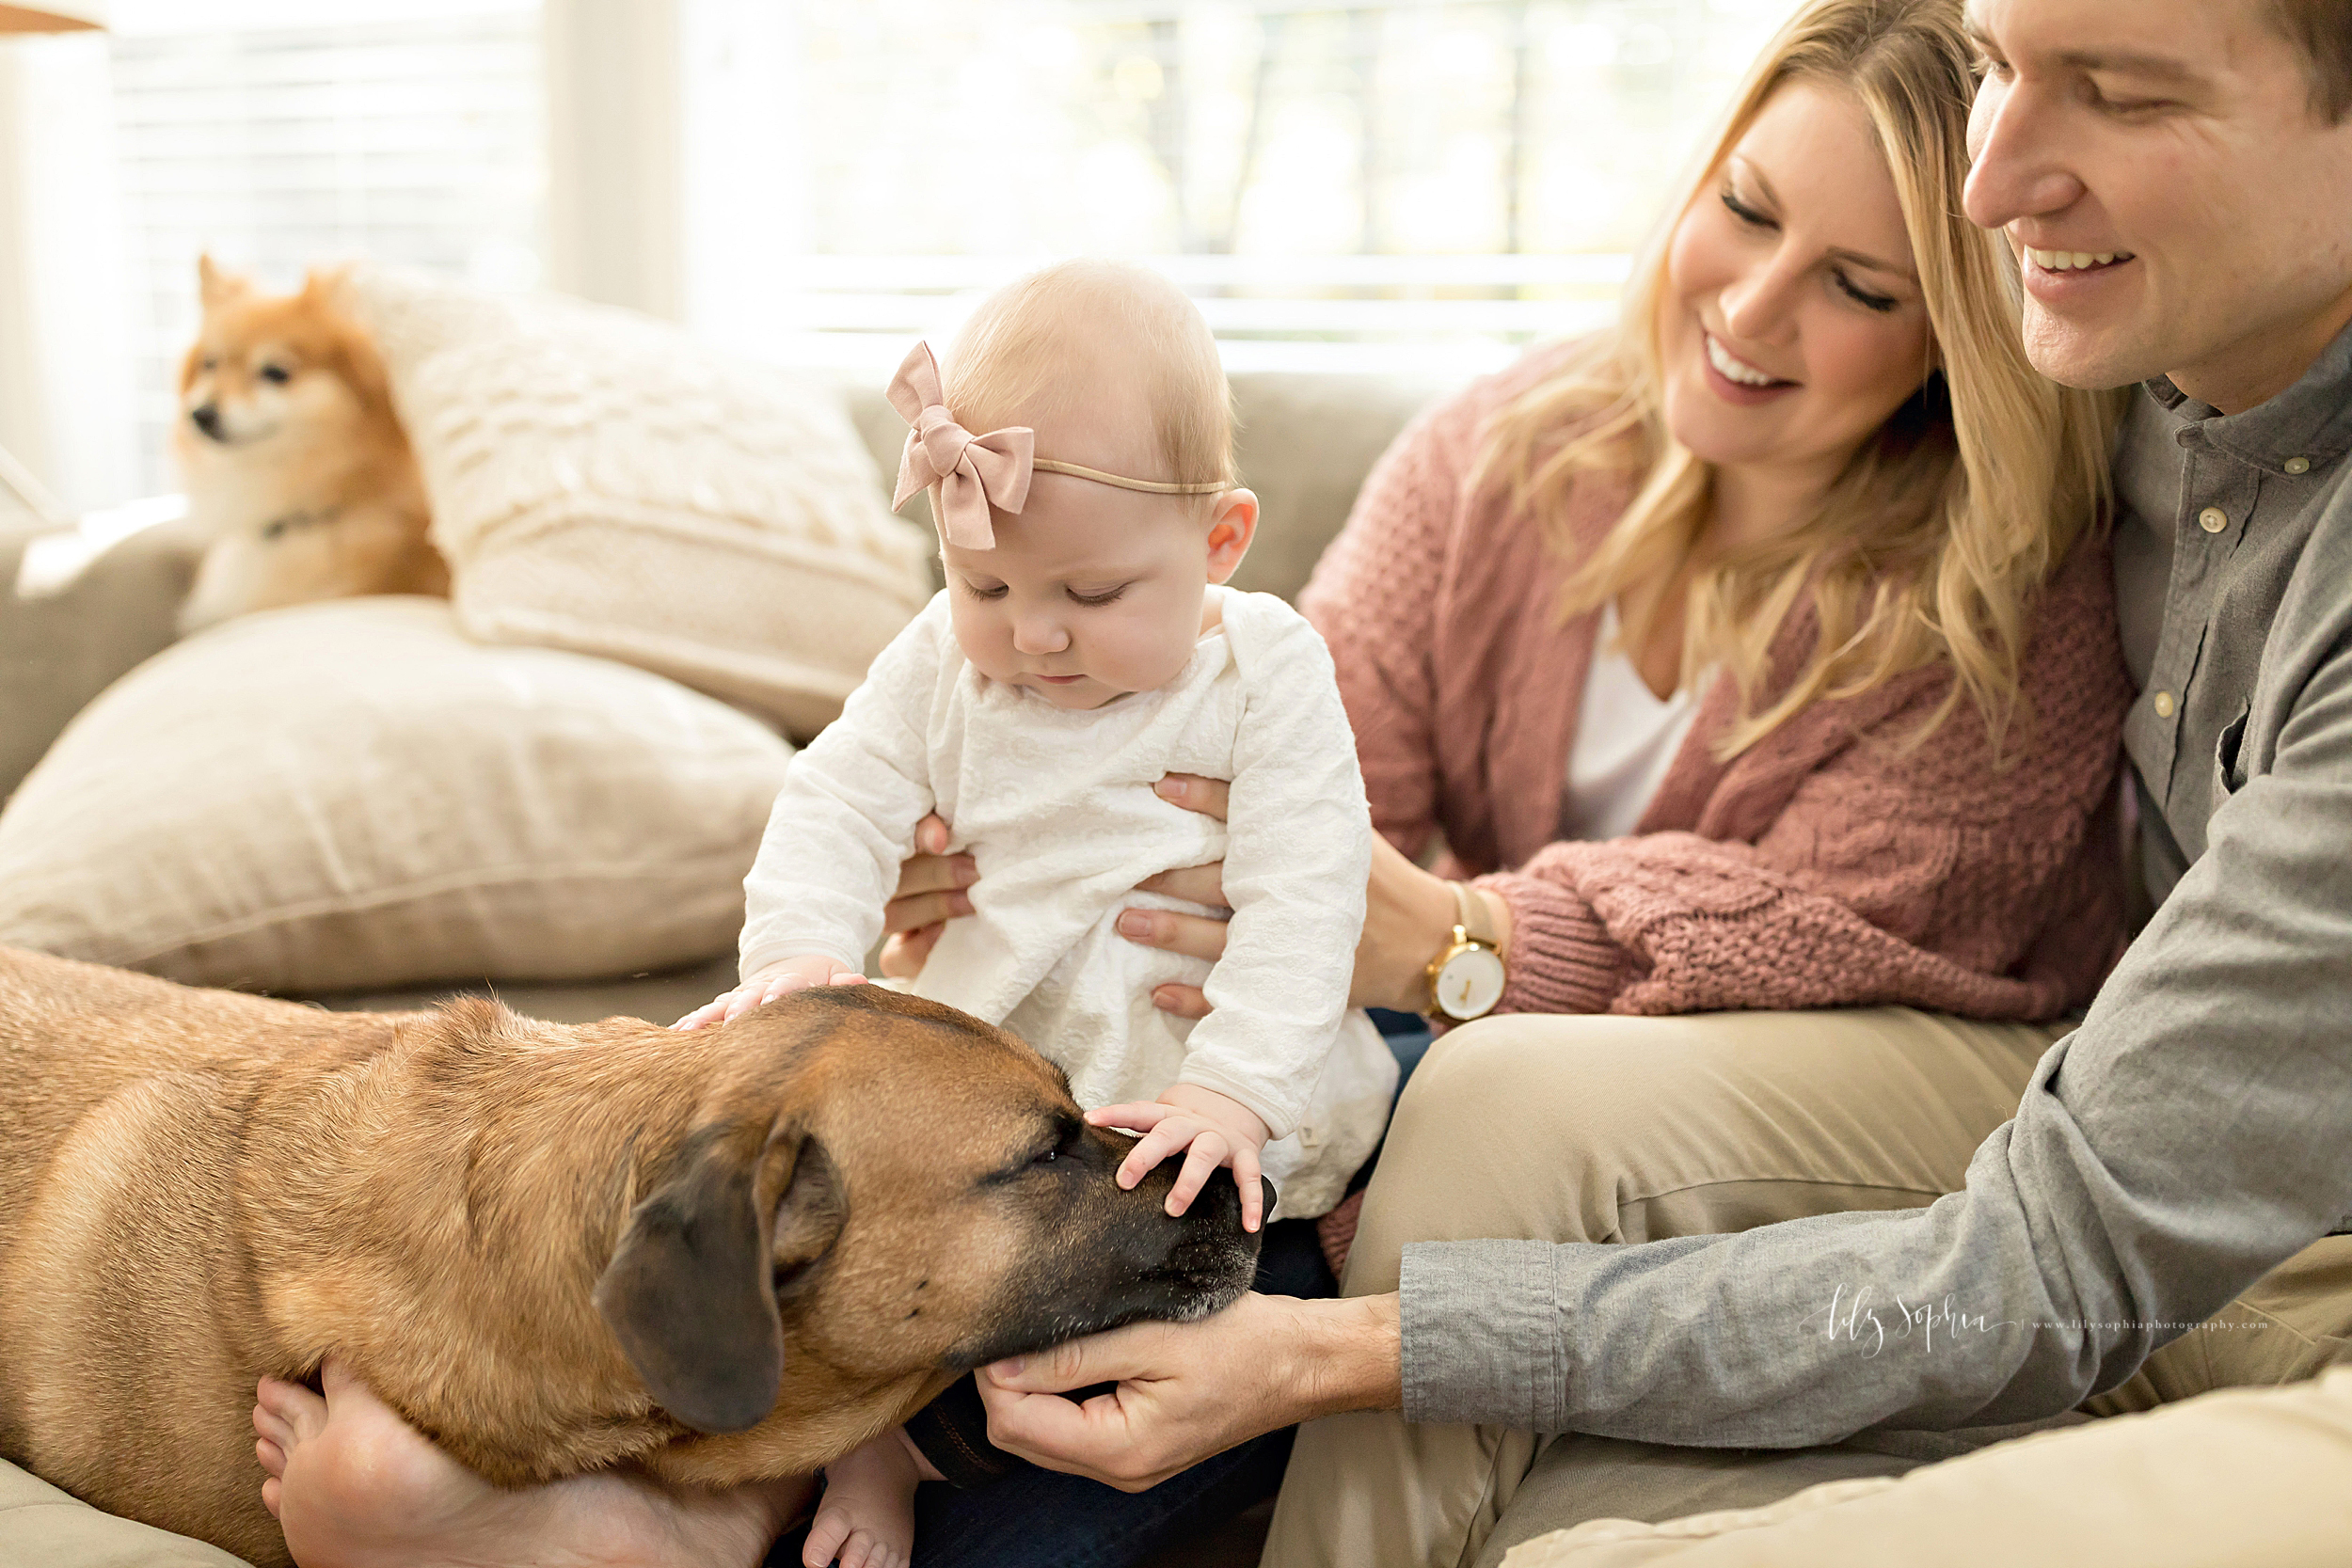 atlanta-midtown-brookhaven-ashford-dunwoody-virginia-highlands-roswell-decatur-lily-sophia-photography-in-home-six-month-milestone-family-lifestyle-session-sandy-springs_0650.jpg